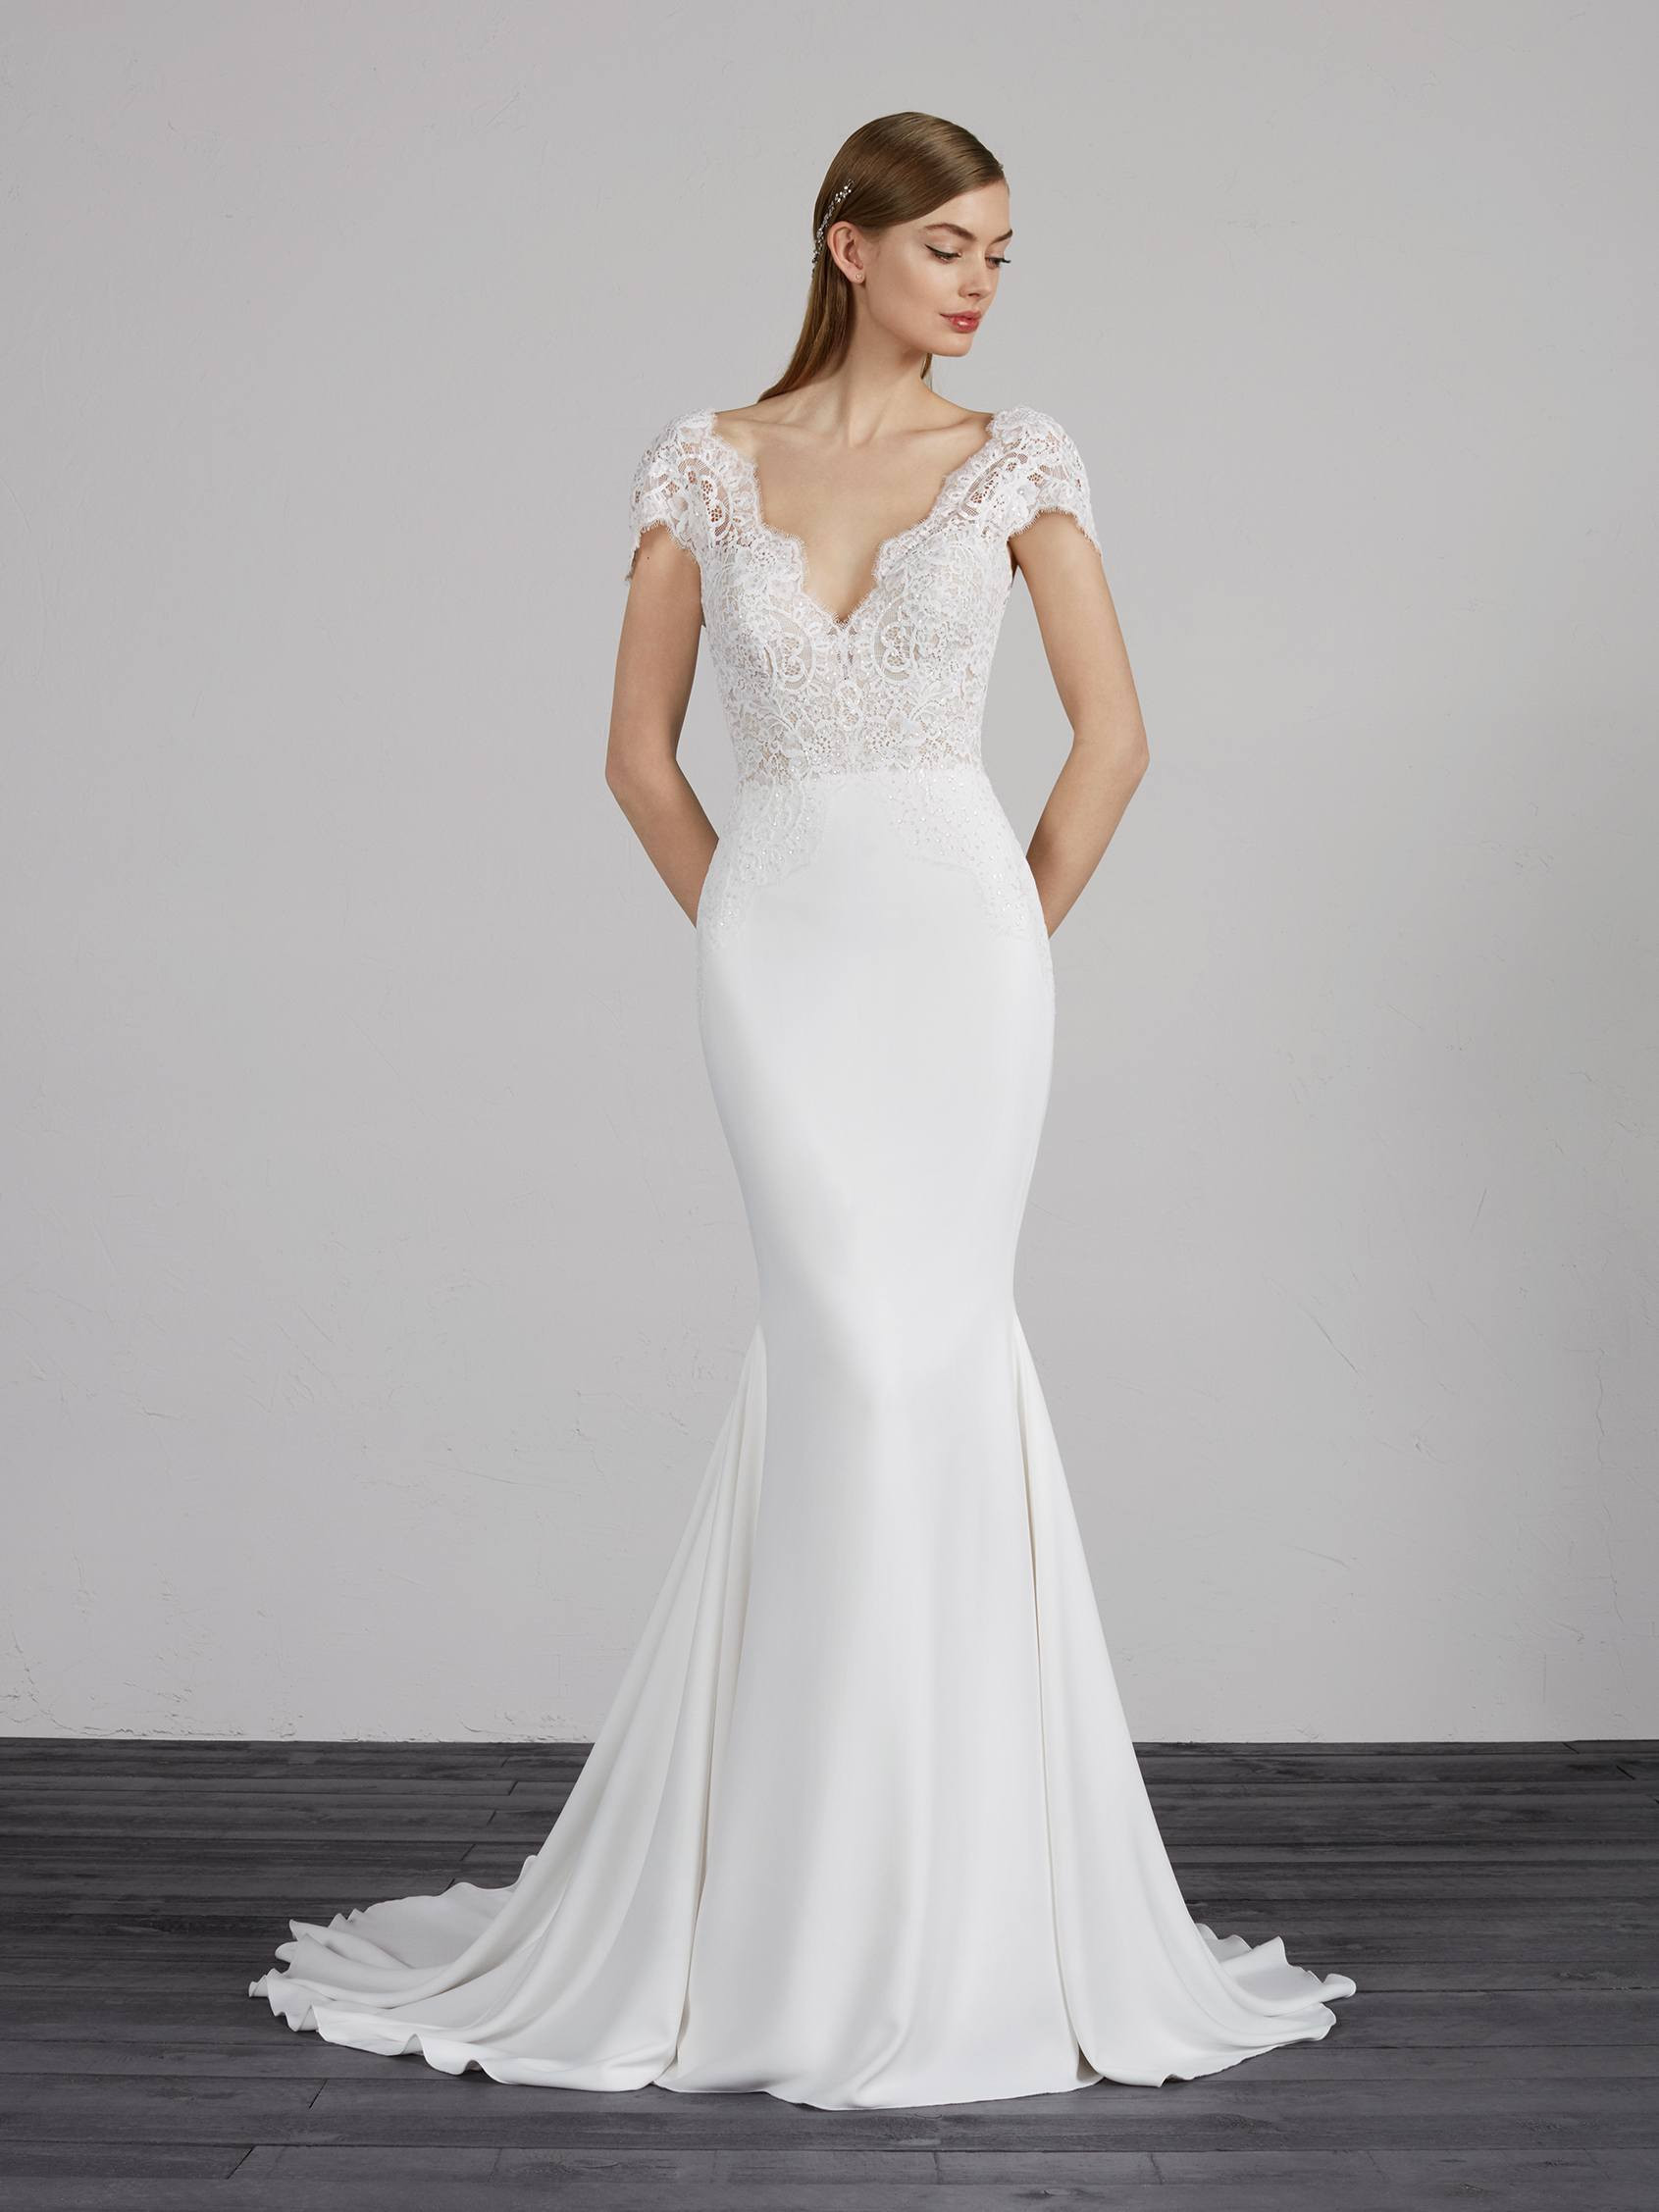 Lovely Mermaid Wedding Dress With Short Sleeves And Lace Pronovias